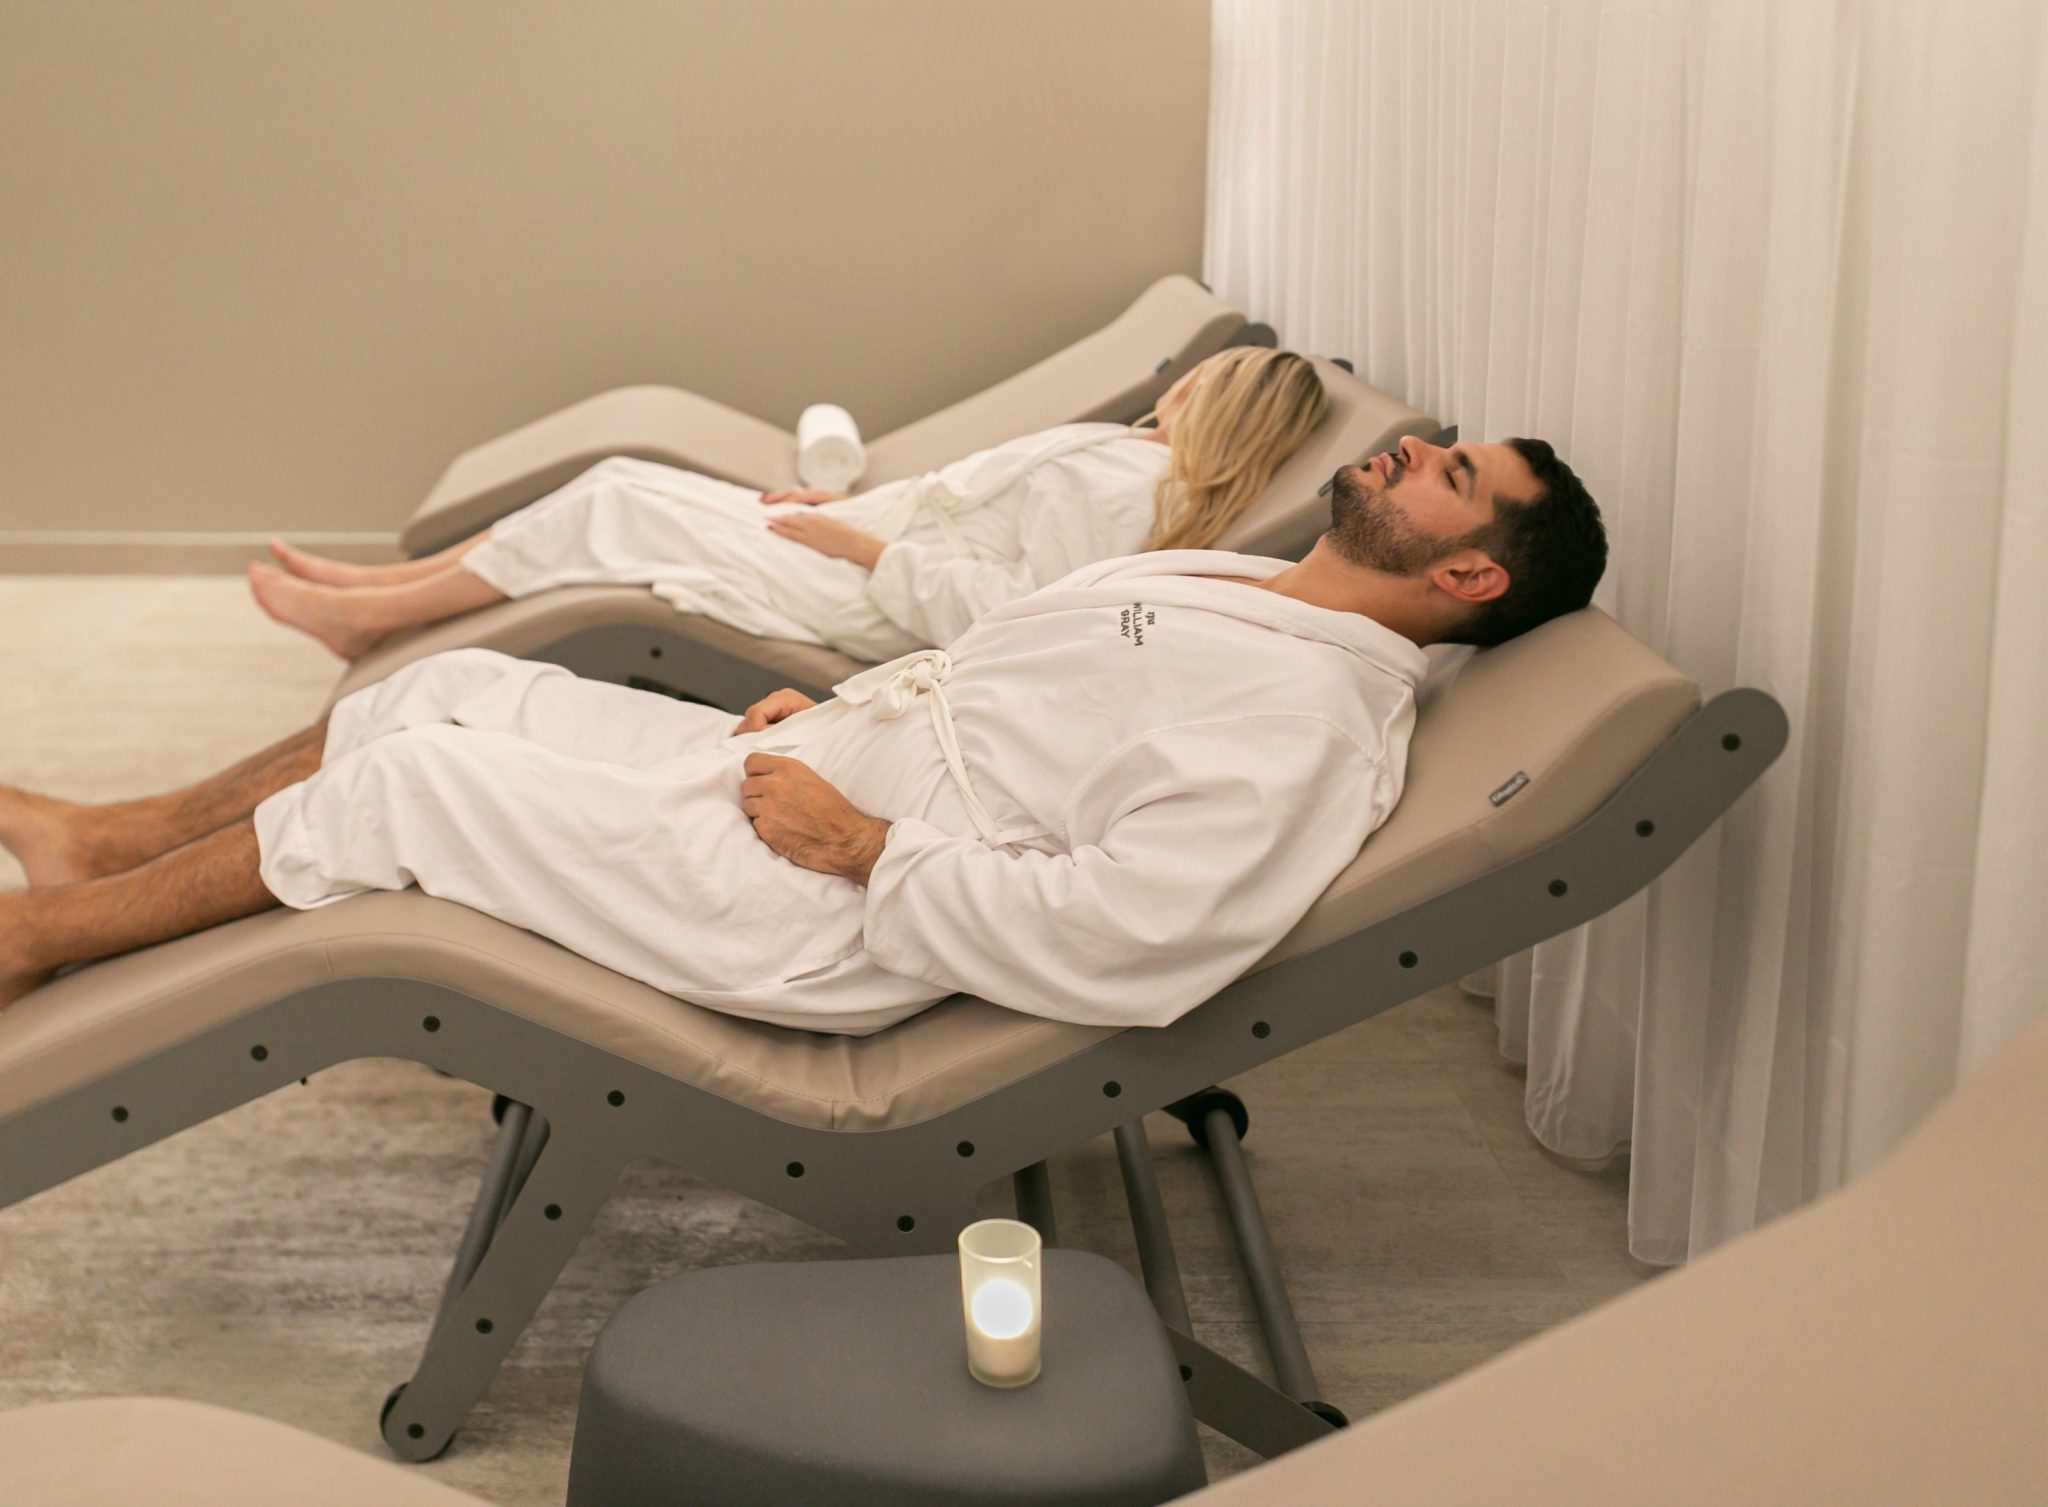 2 people having a relaxation moment in the relaxation space of Spa William Gray